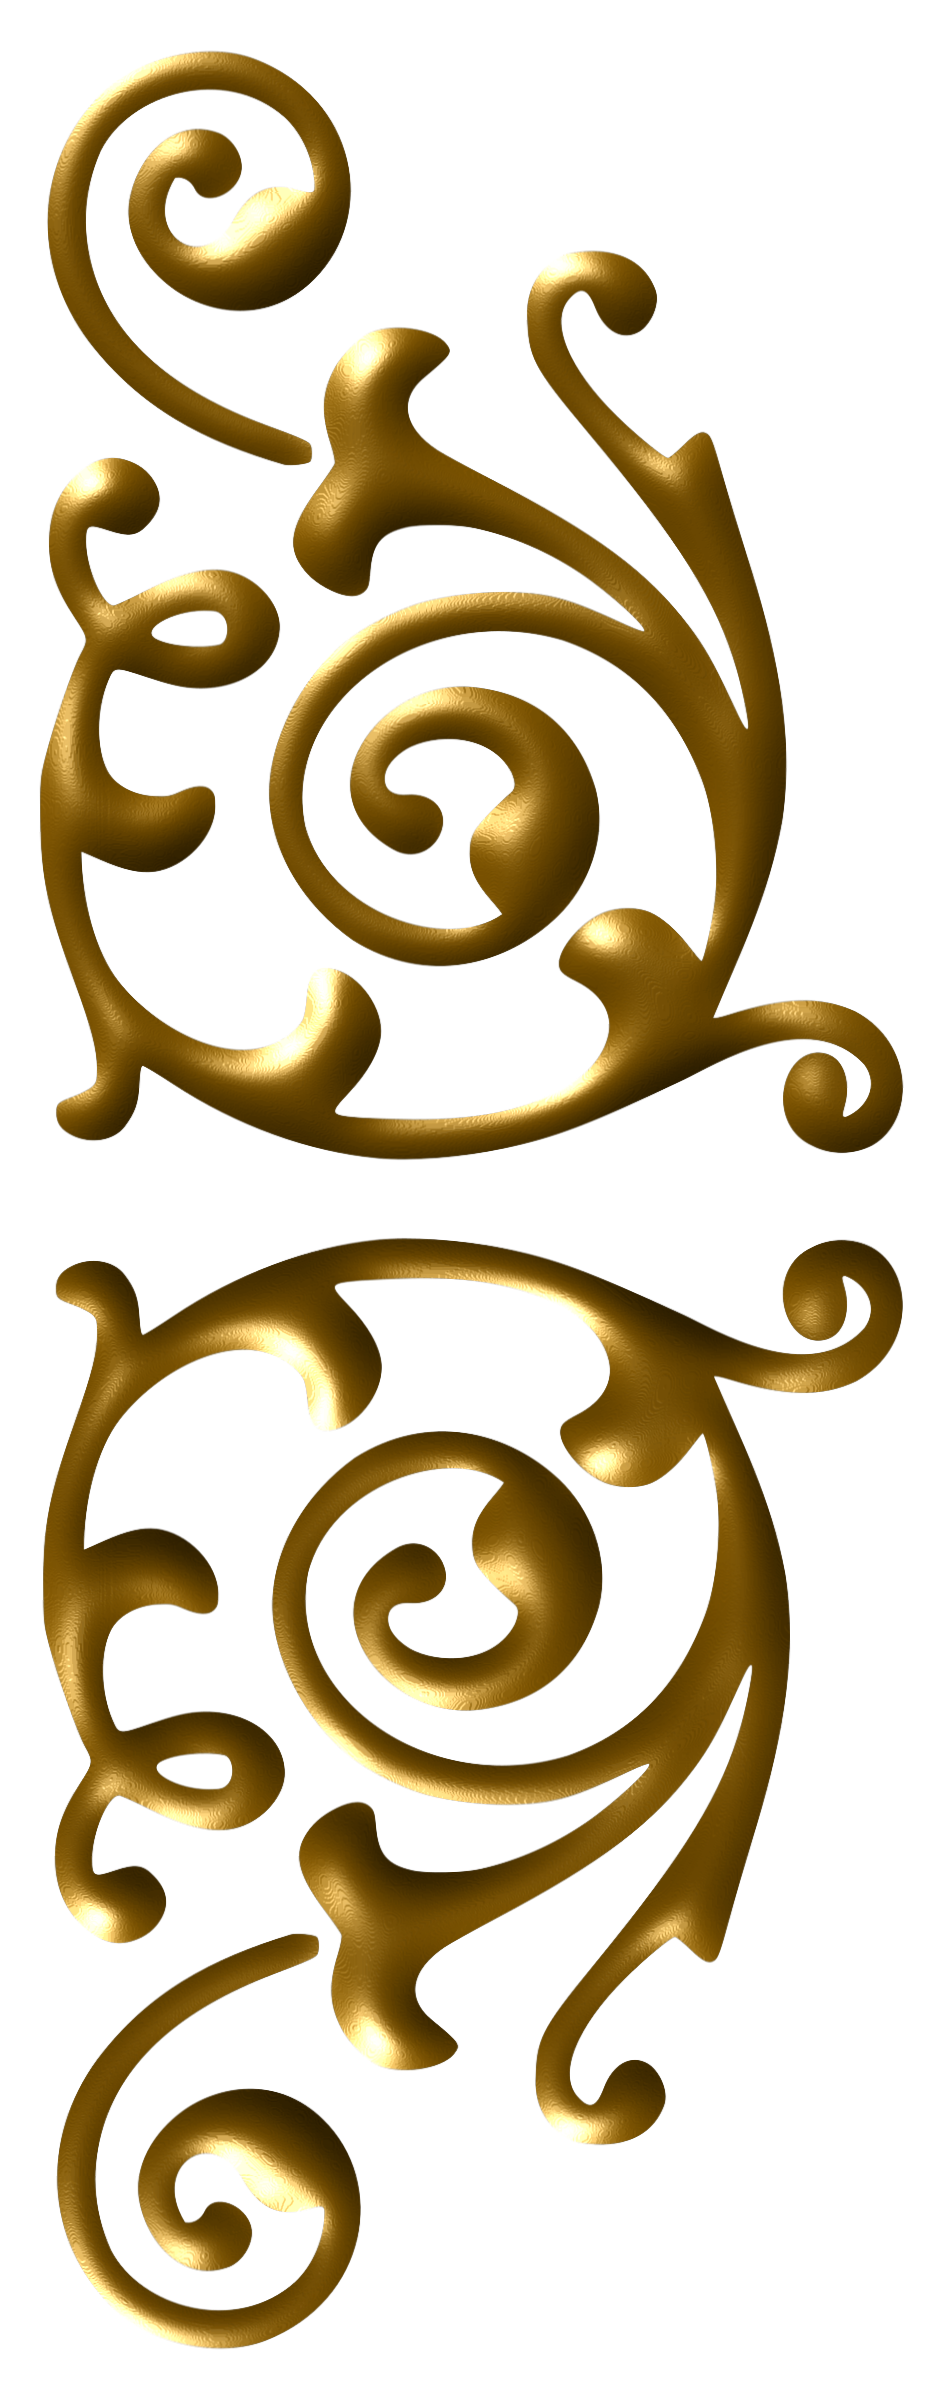 Decorative clipart curly. Vine big image png